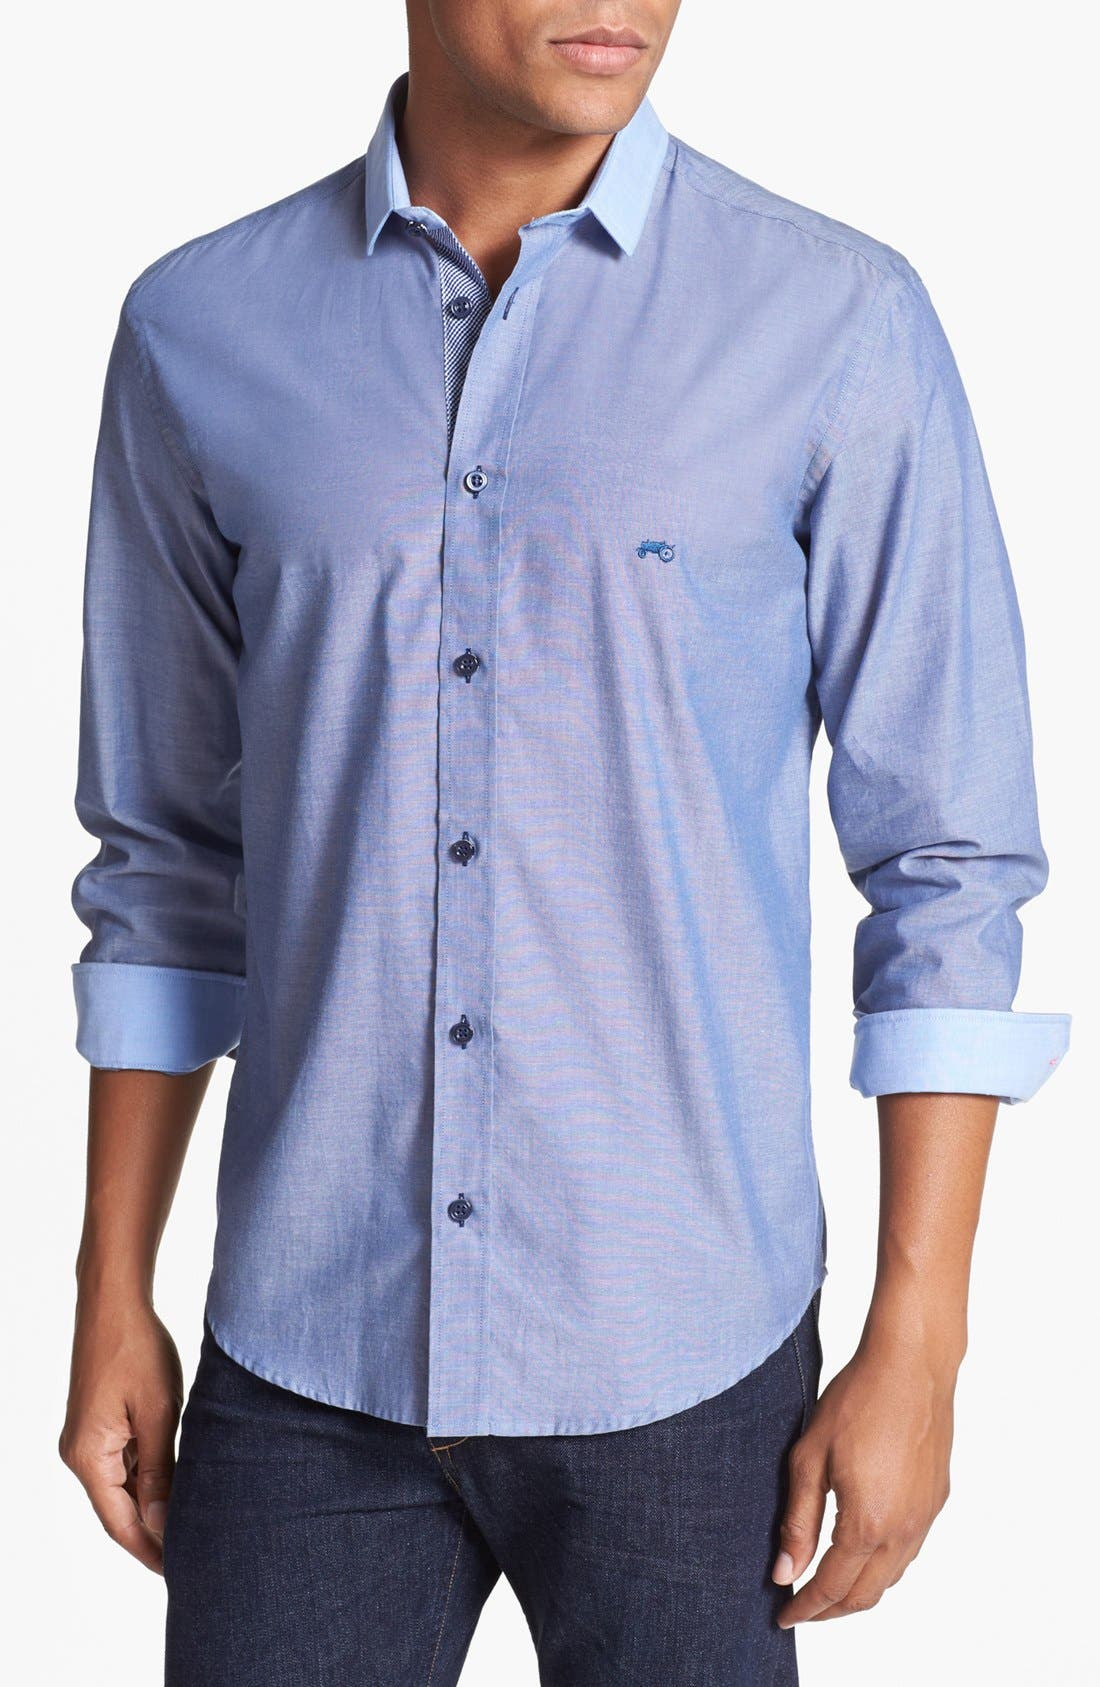 Alternate Image 1 Selected - Moods of Norway 'Arne Vik' Slim Fit Sport Shirt